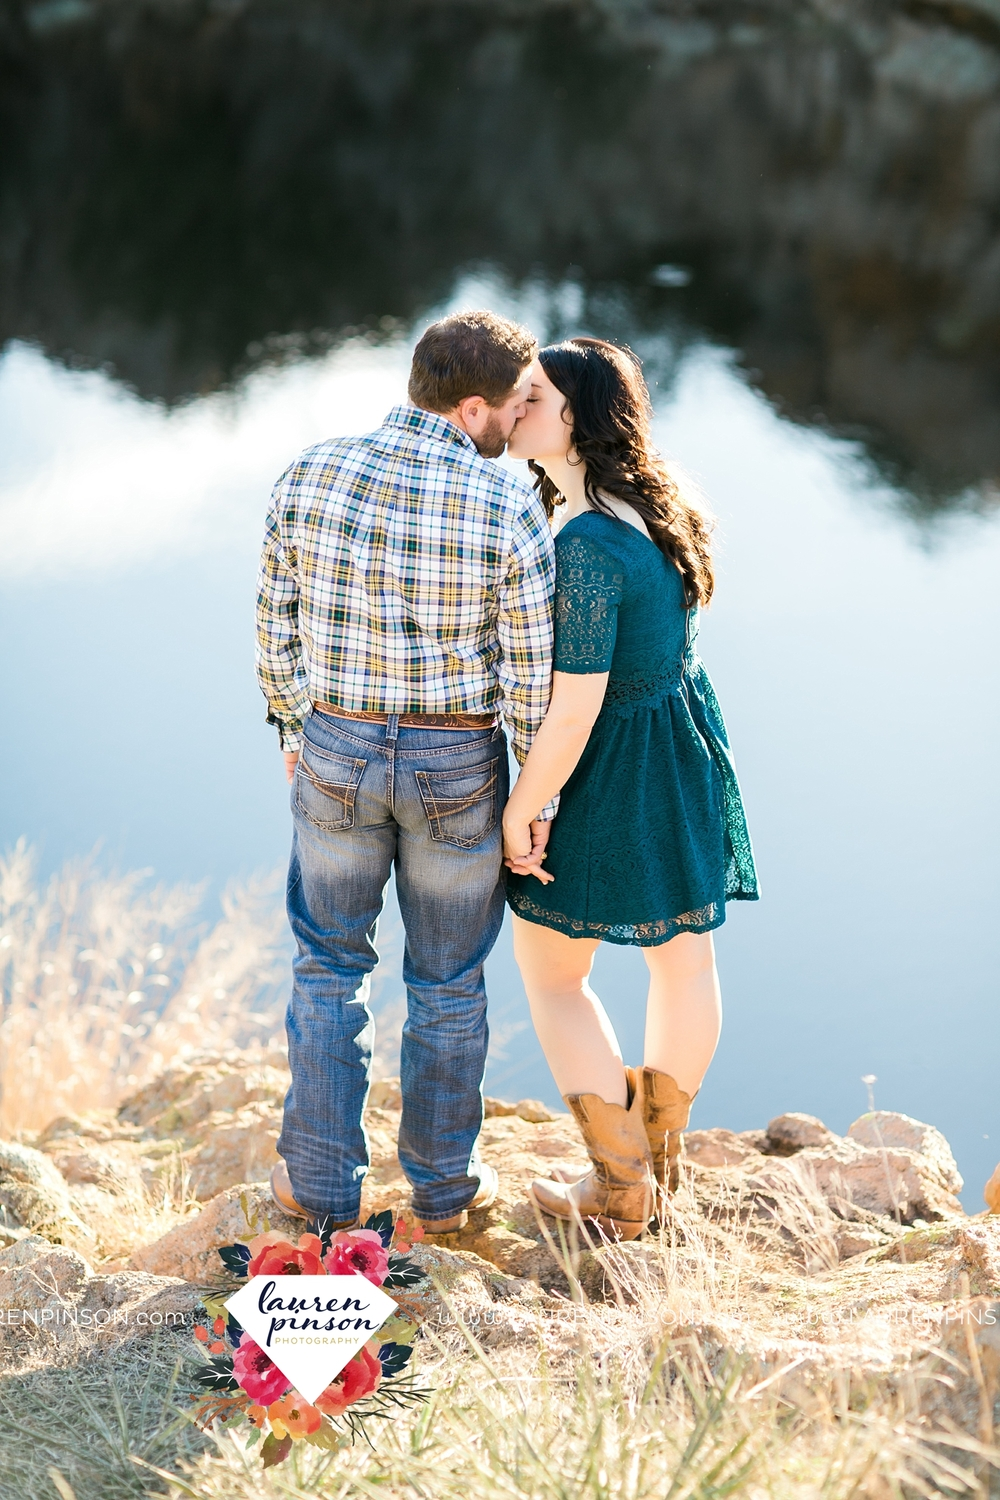 wichita-falls-texas-engagement-photographer-wedding-oklahoma-lawton-wichita-mountains-refuge-outdoors-mountains-engaged_2055.jpg